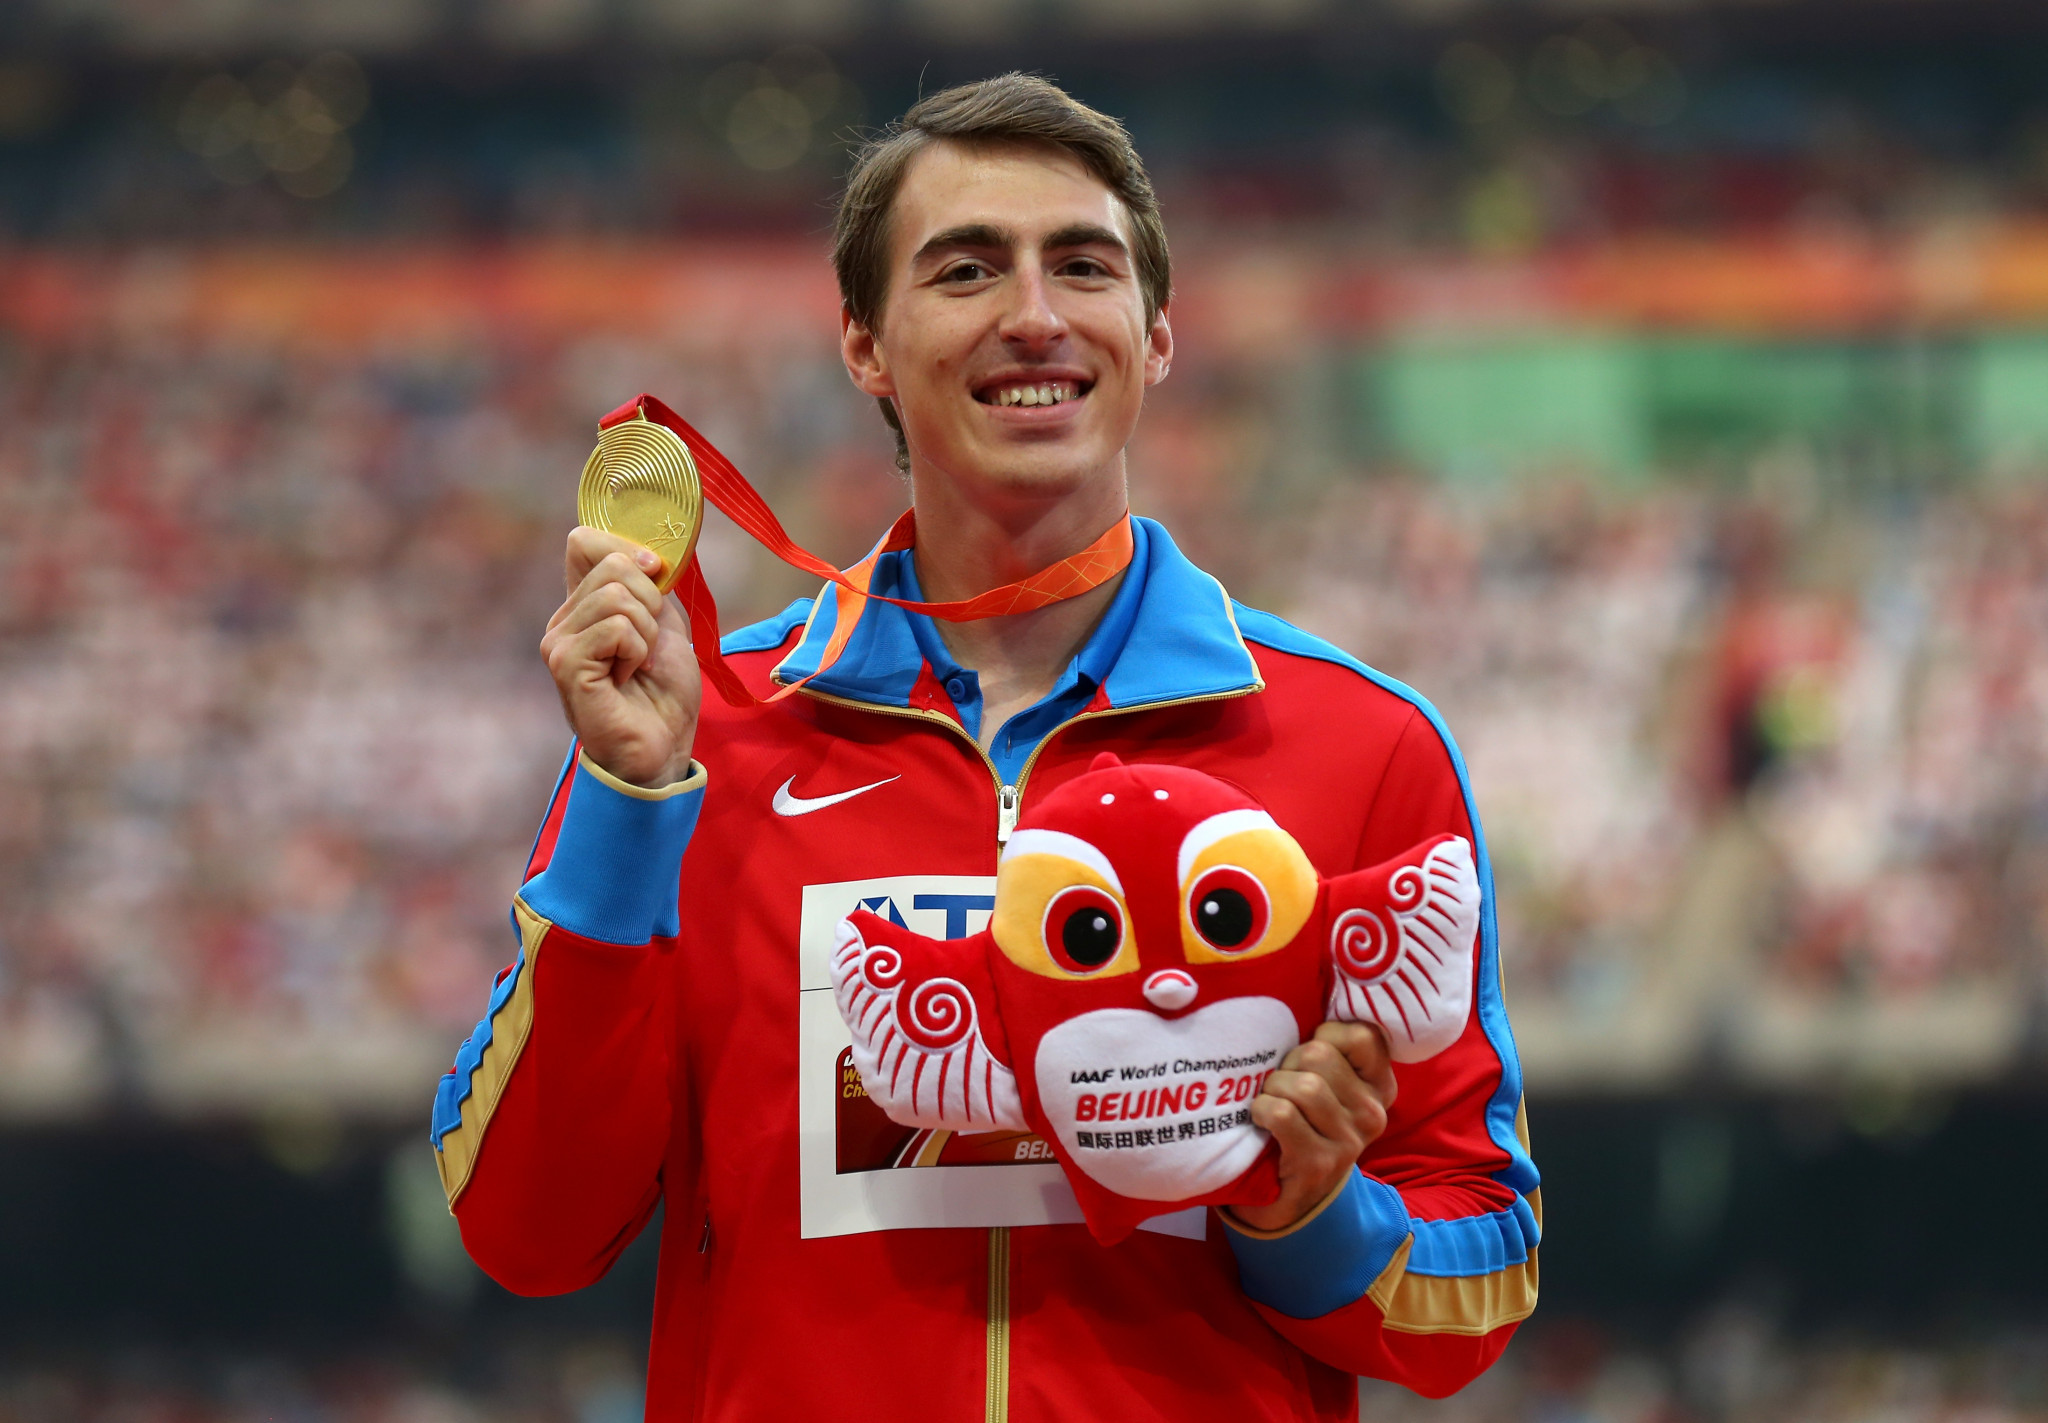 Sergey Shubenkov won the gold medal in the 110m hurdles at the 2015 World Championships in Beijing ©Getty Images